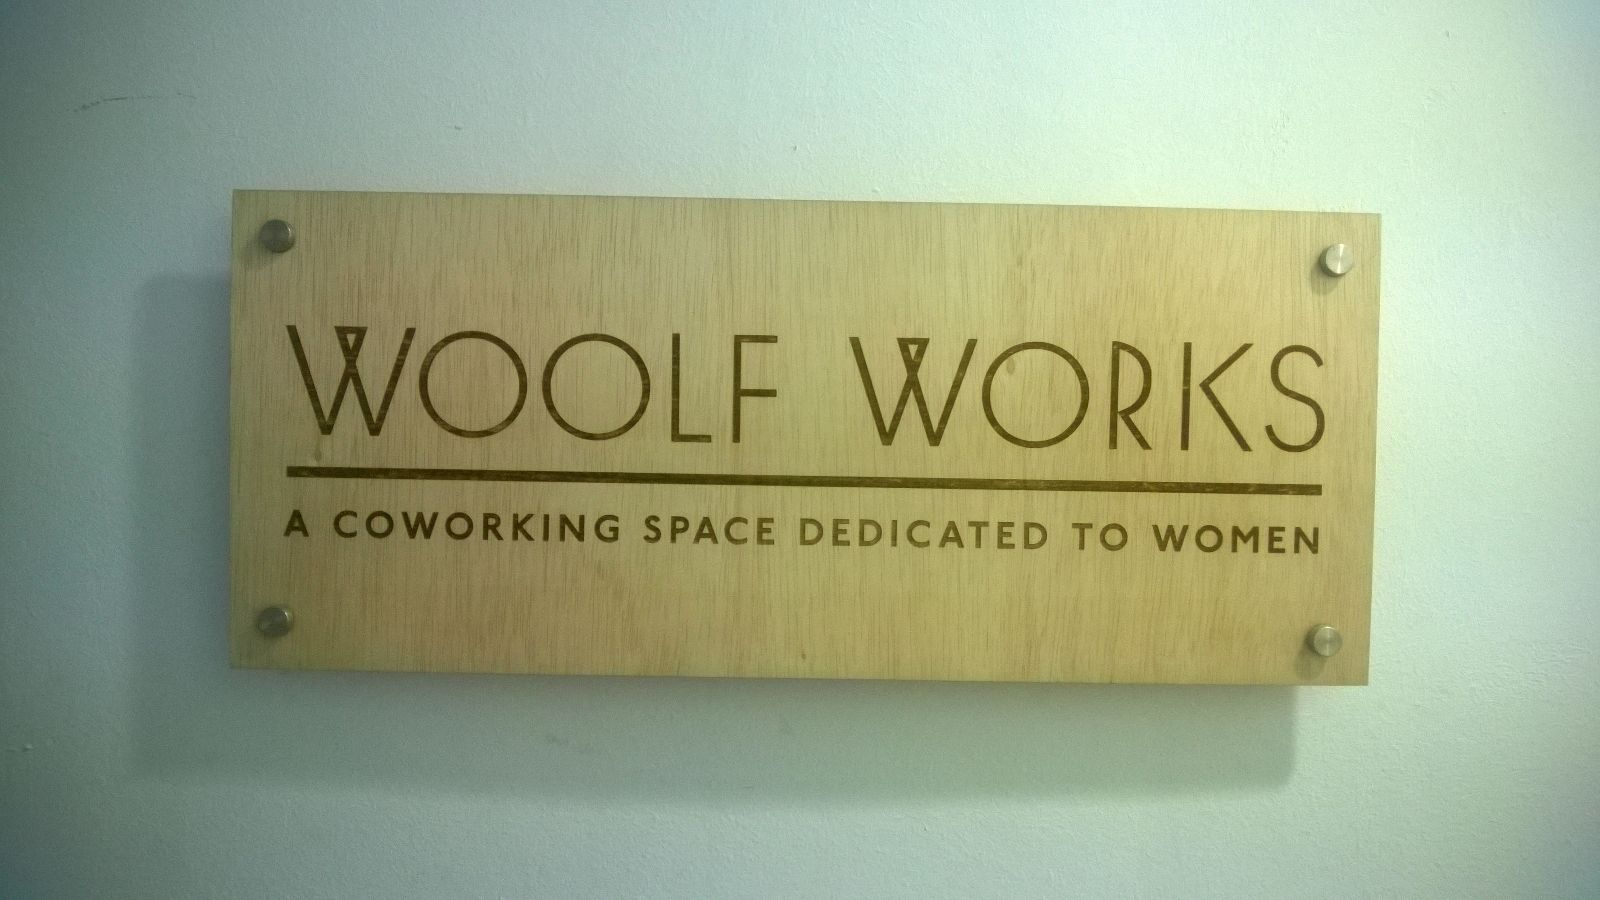 Woolf works Geylang Singapore coworking space Kowrk